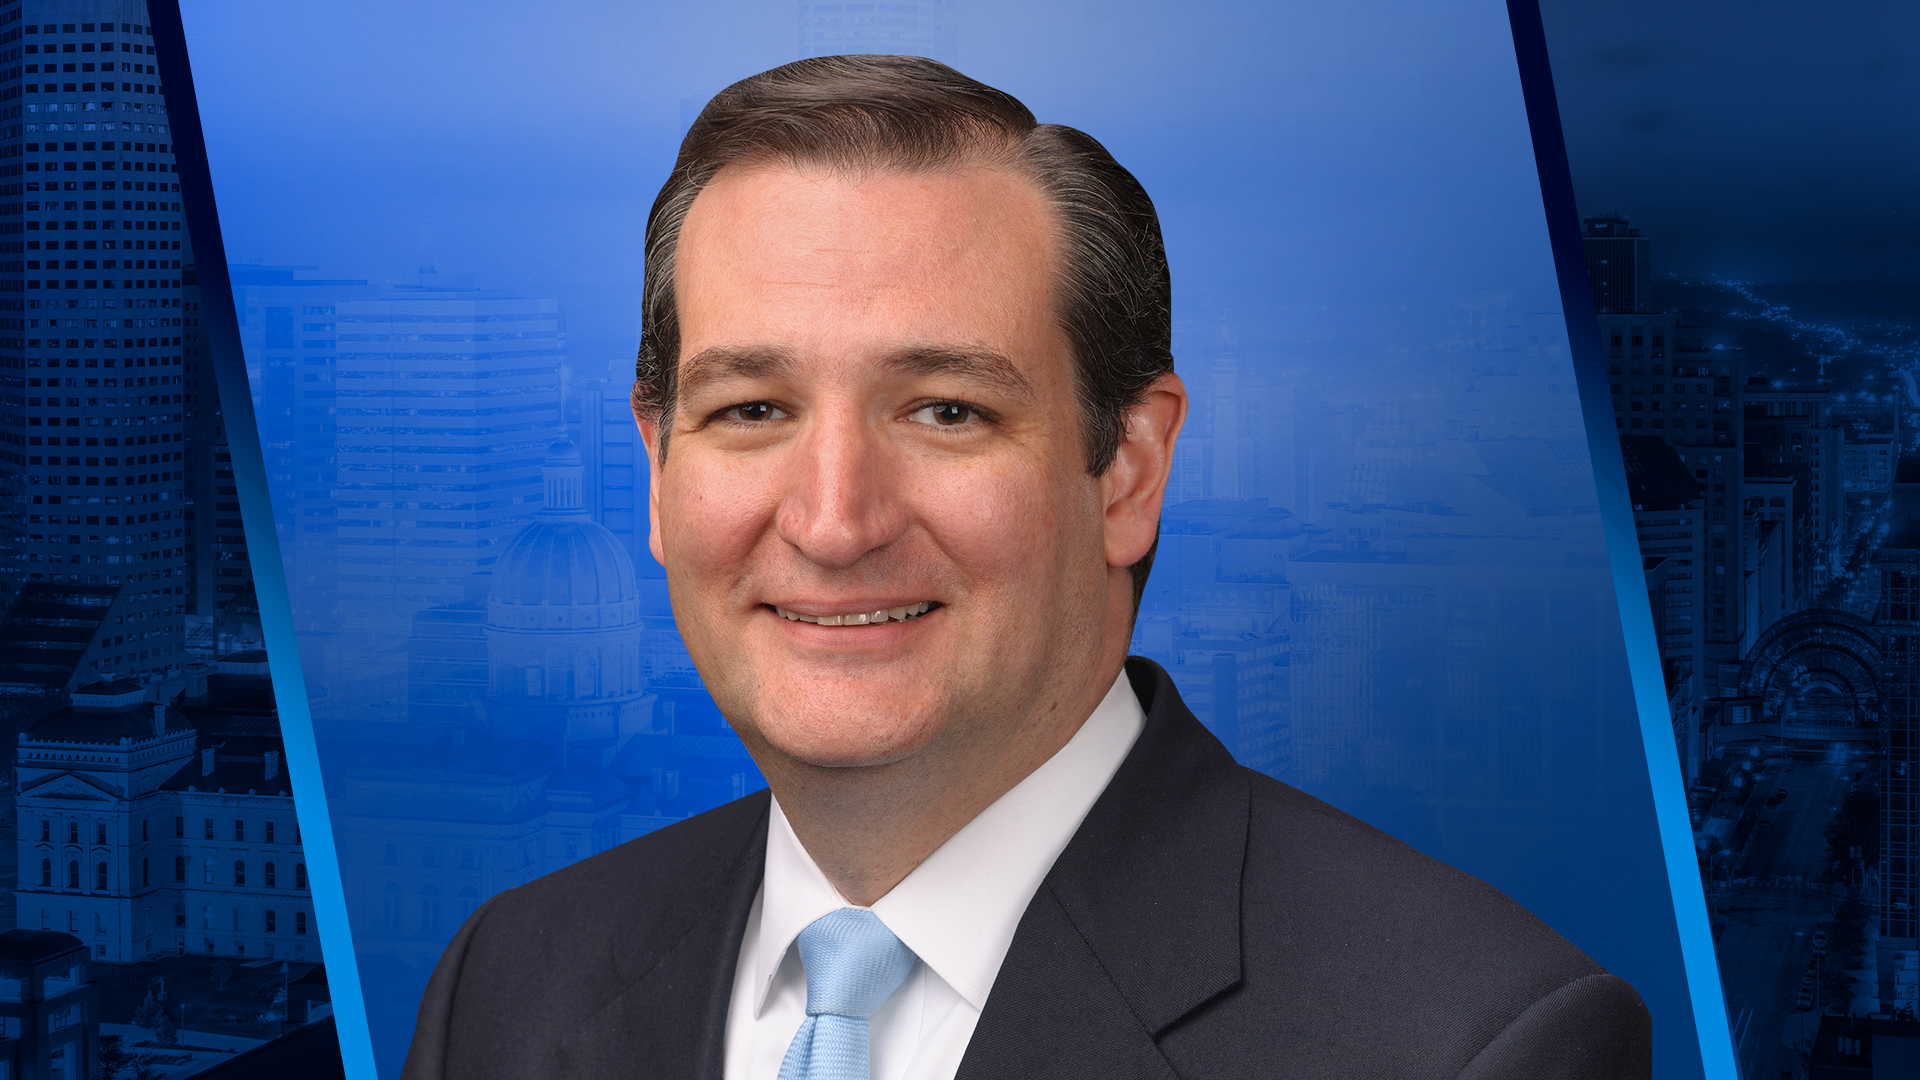 Senator Ted Cruz: 2019 NRA-ILA Leadership Forum